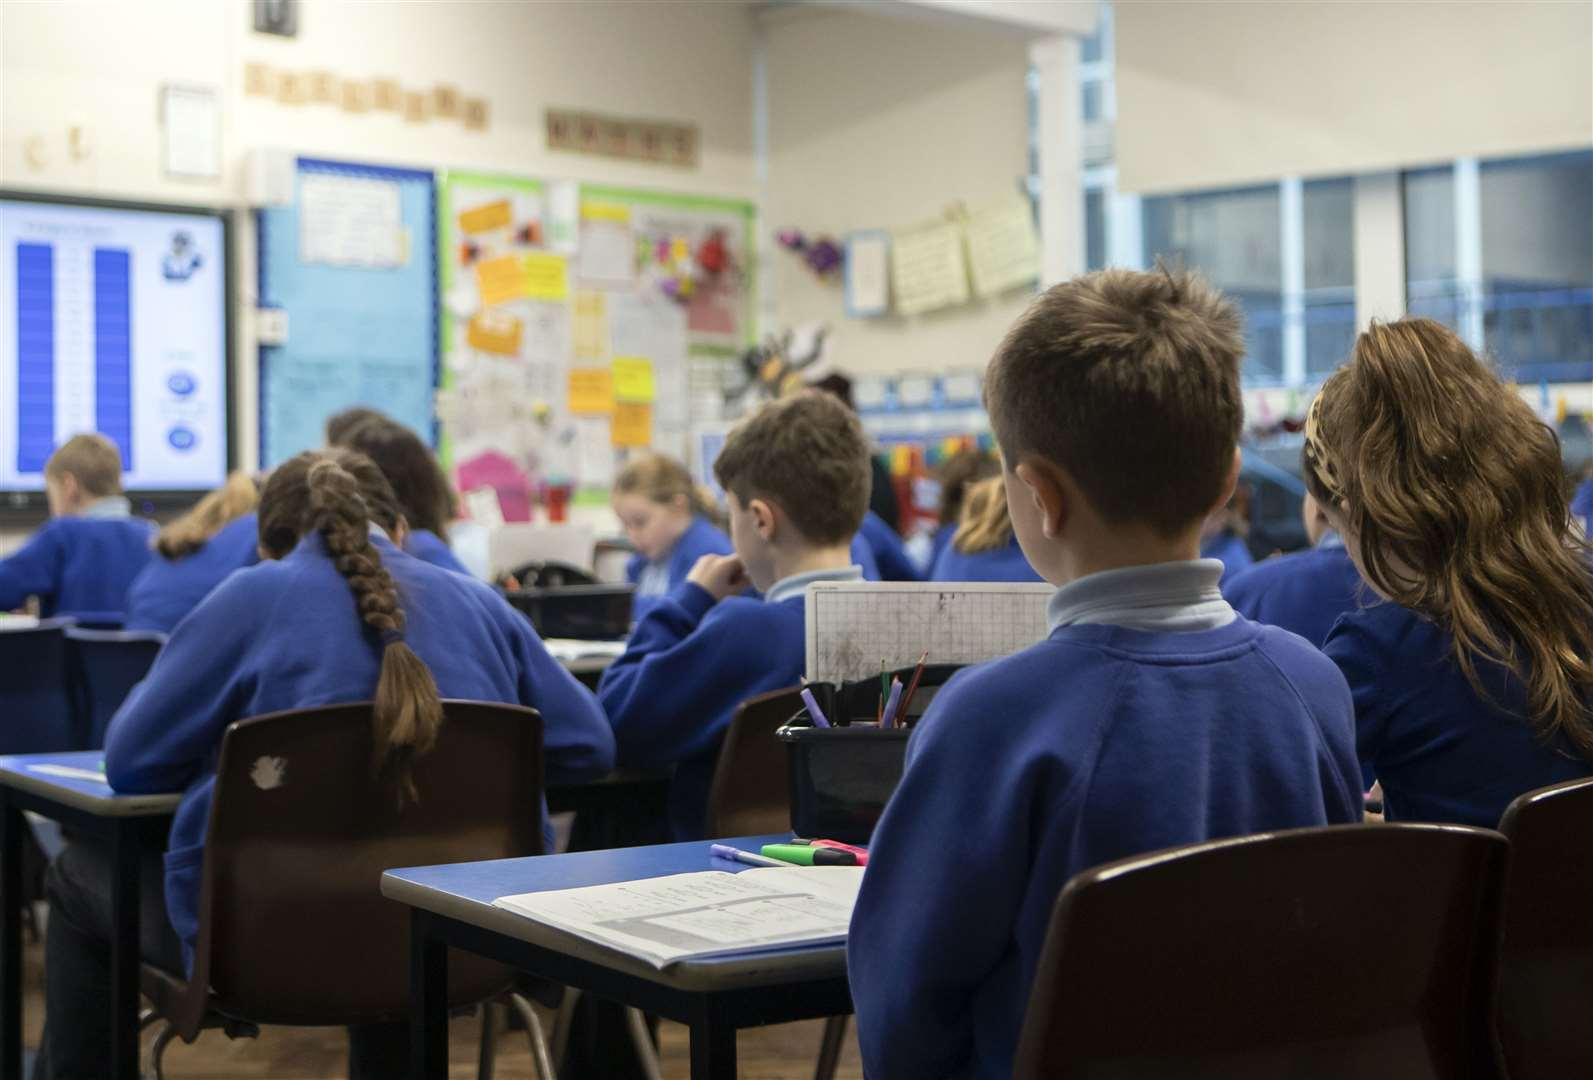 Schools in Thanet, Dover, Folkestone and Hythe and Canterbury are set to reopen next week